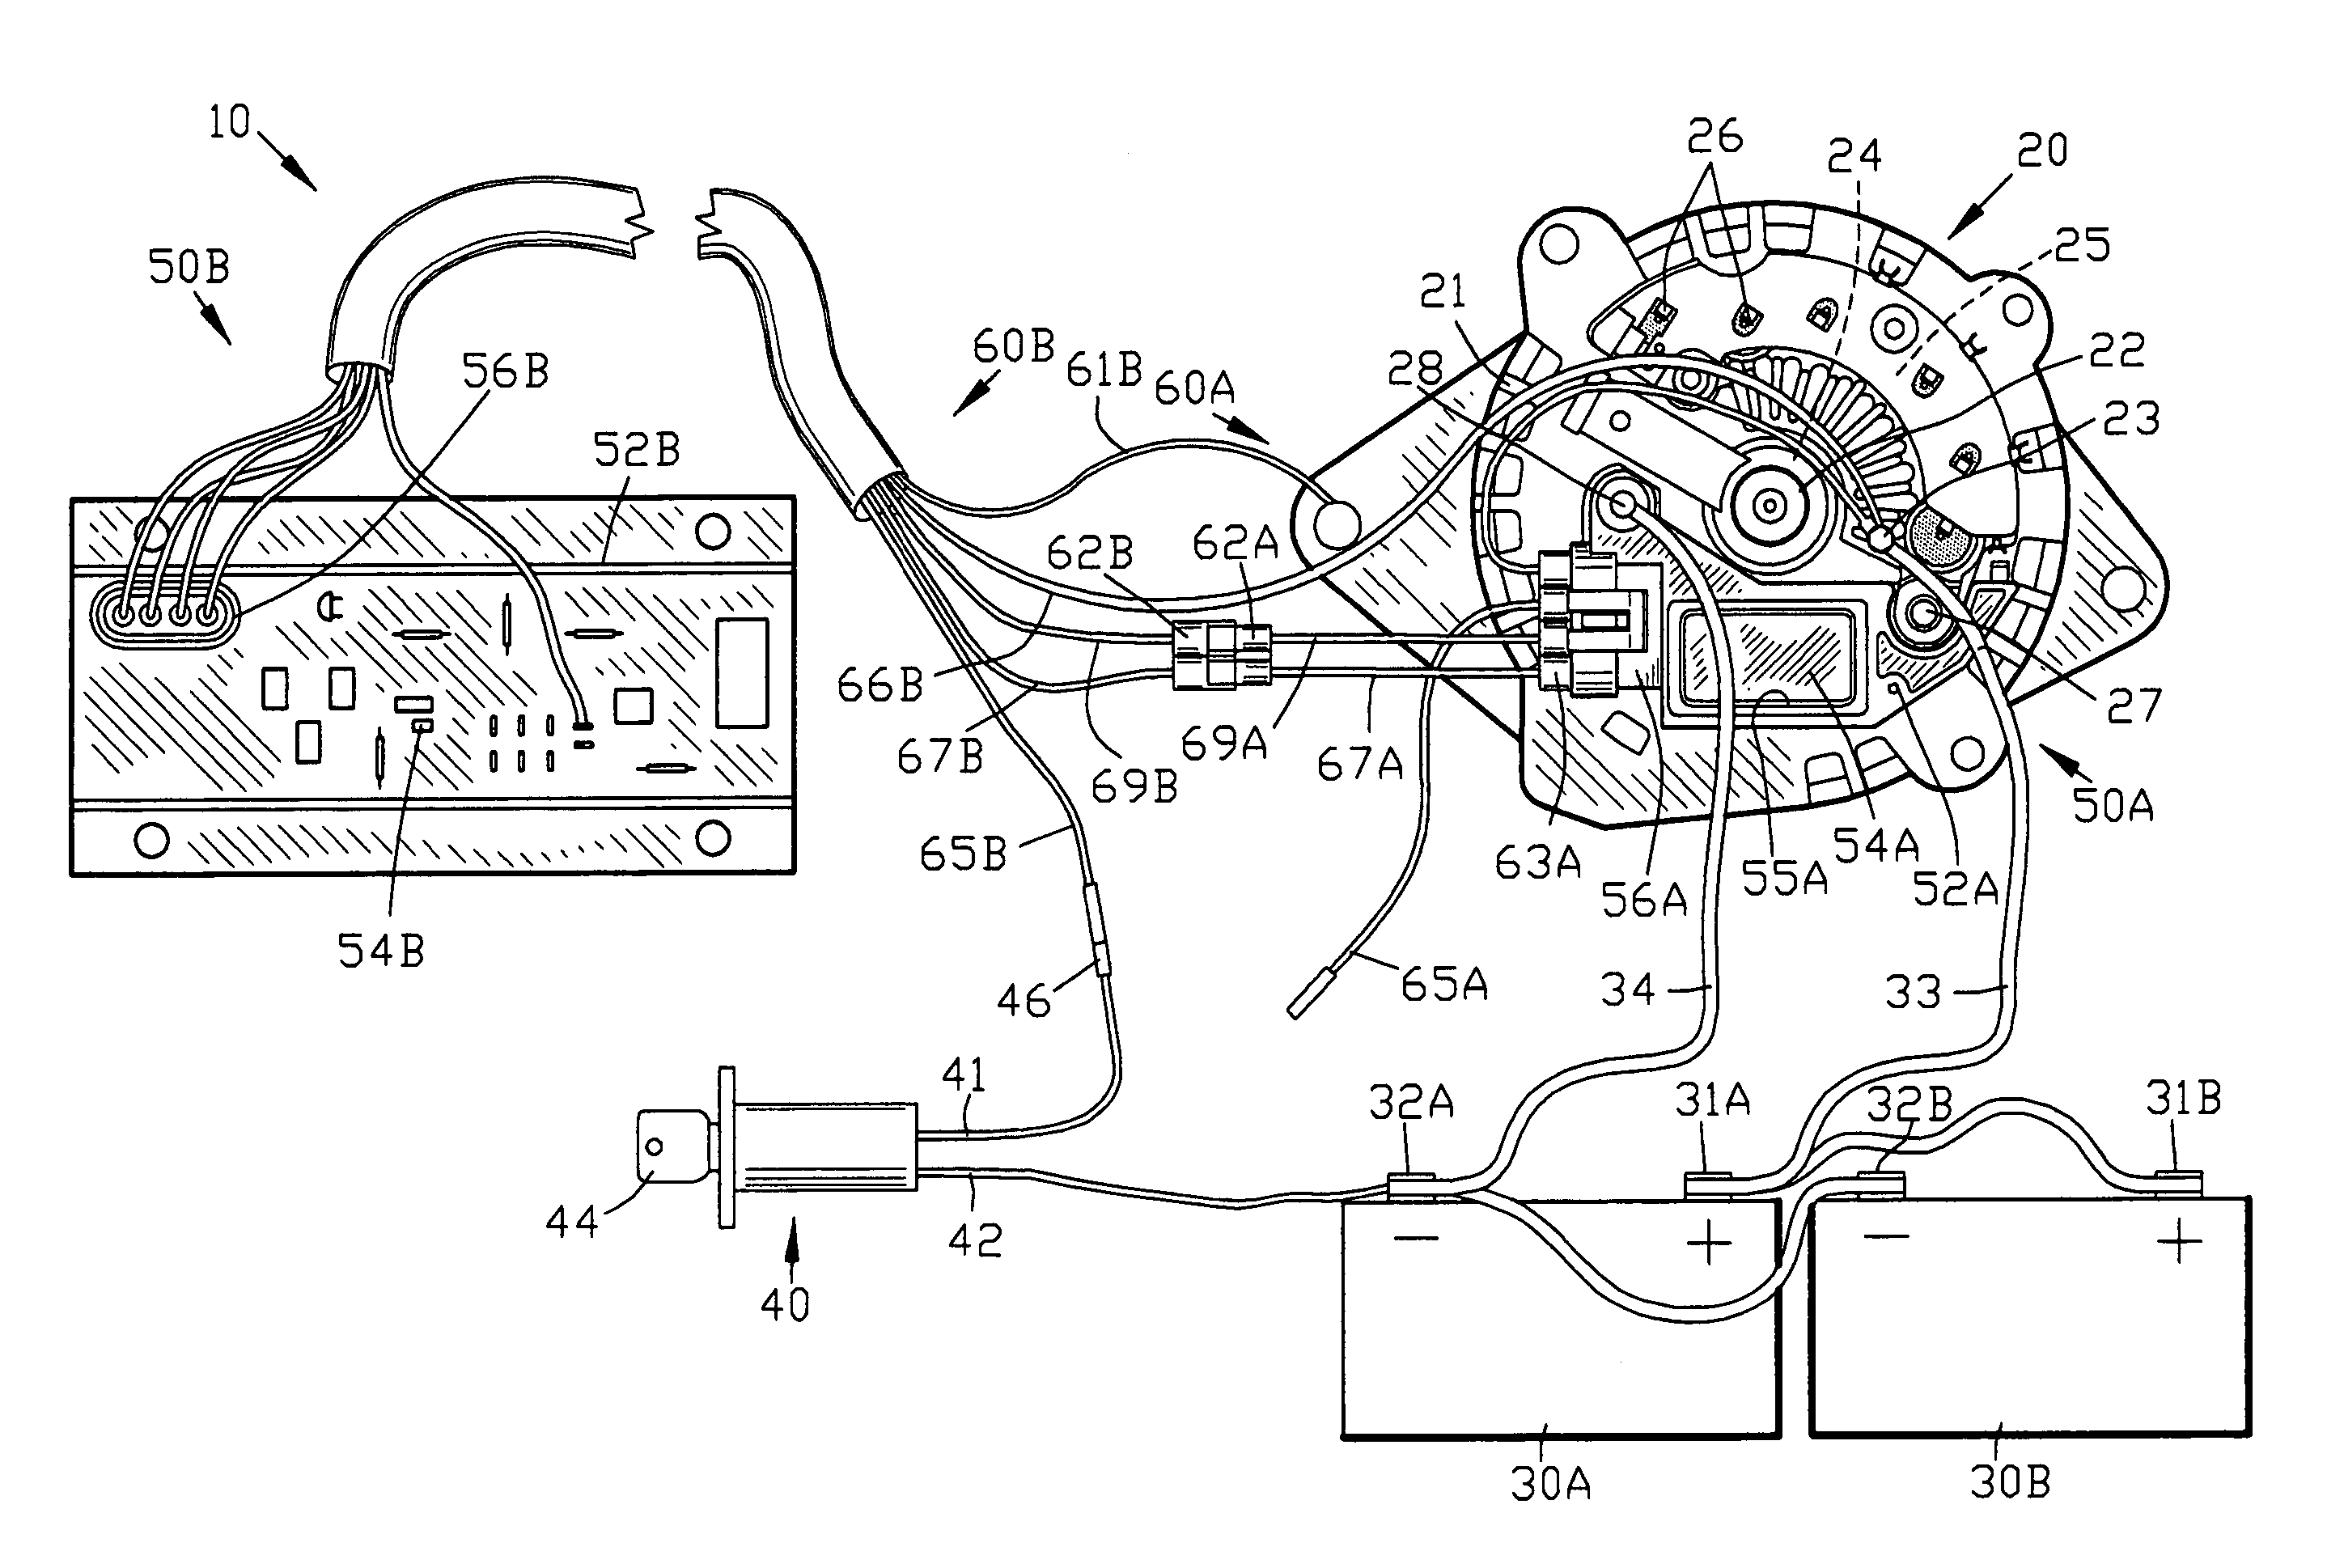 US07245111 20070717 D00000 patent us7245111 regulator system for alternator google patents valeo alternator regulator wiring diagram at crackthecode.co